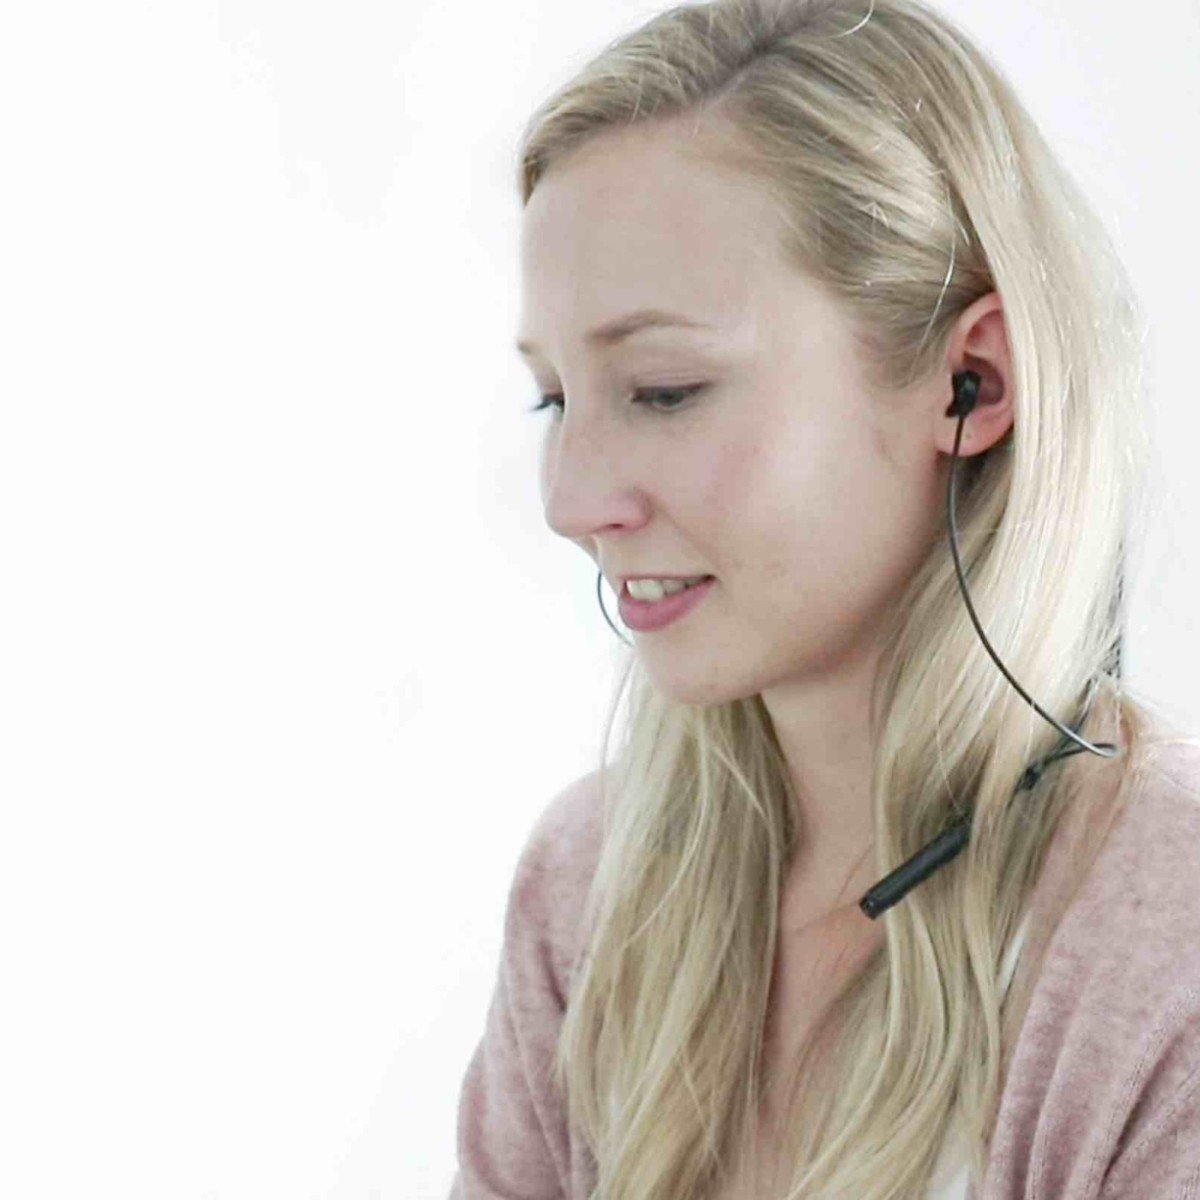 HumanCharger Bluetooth 5 Light Stimulation Device offers powerful audio